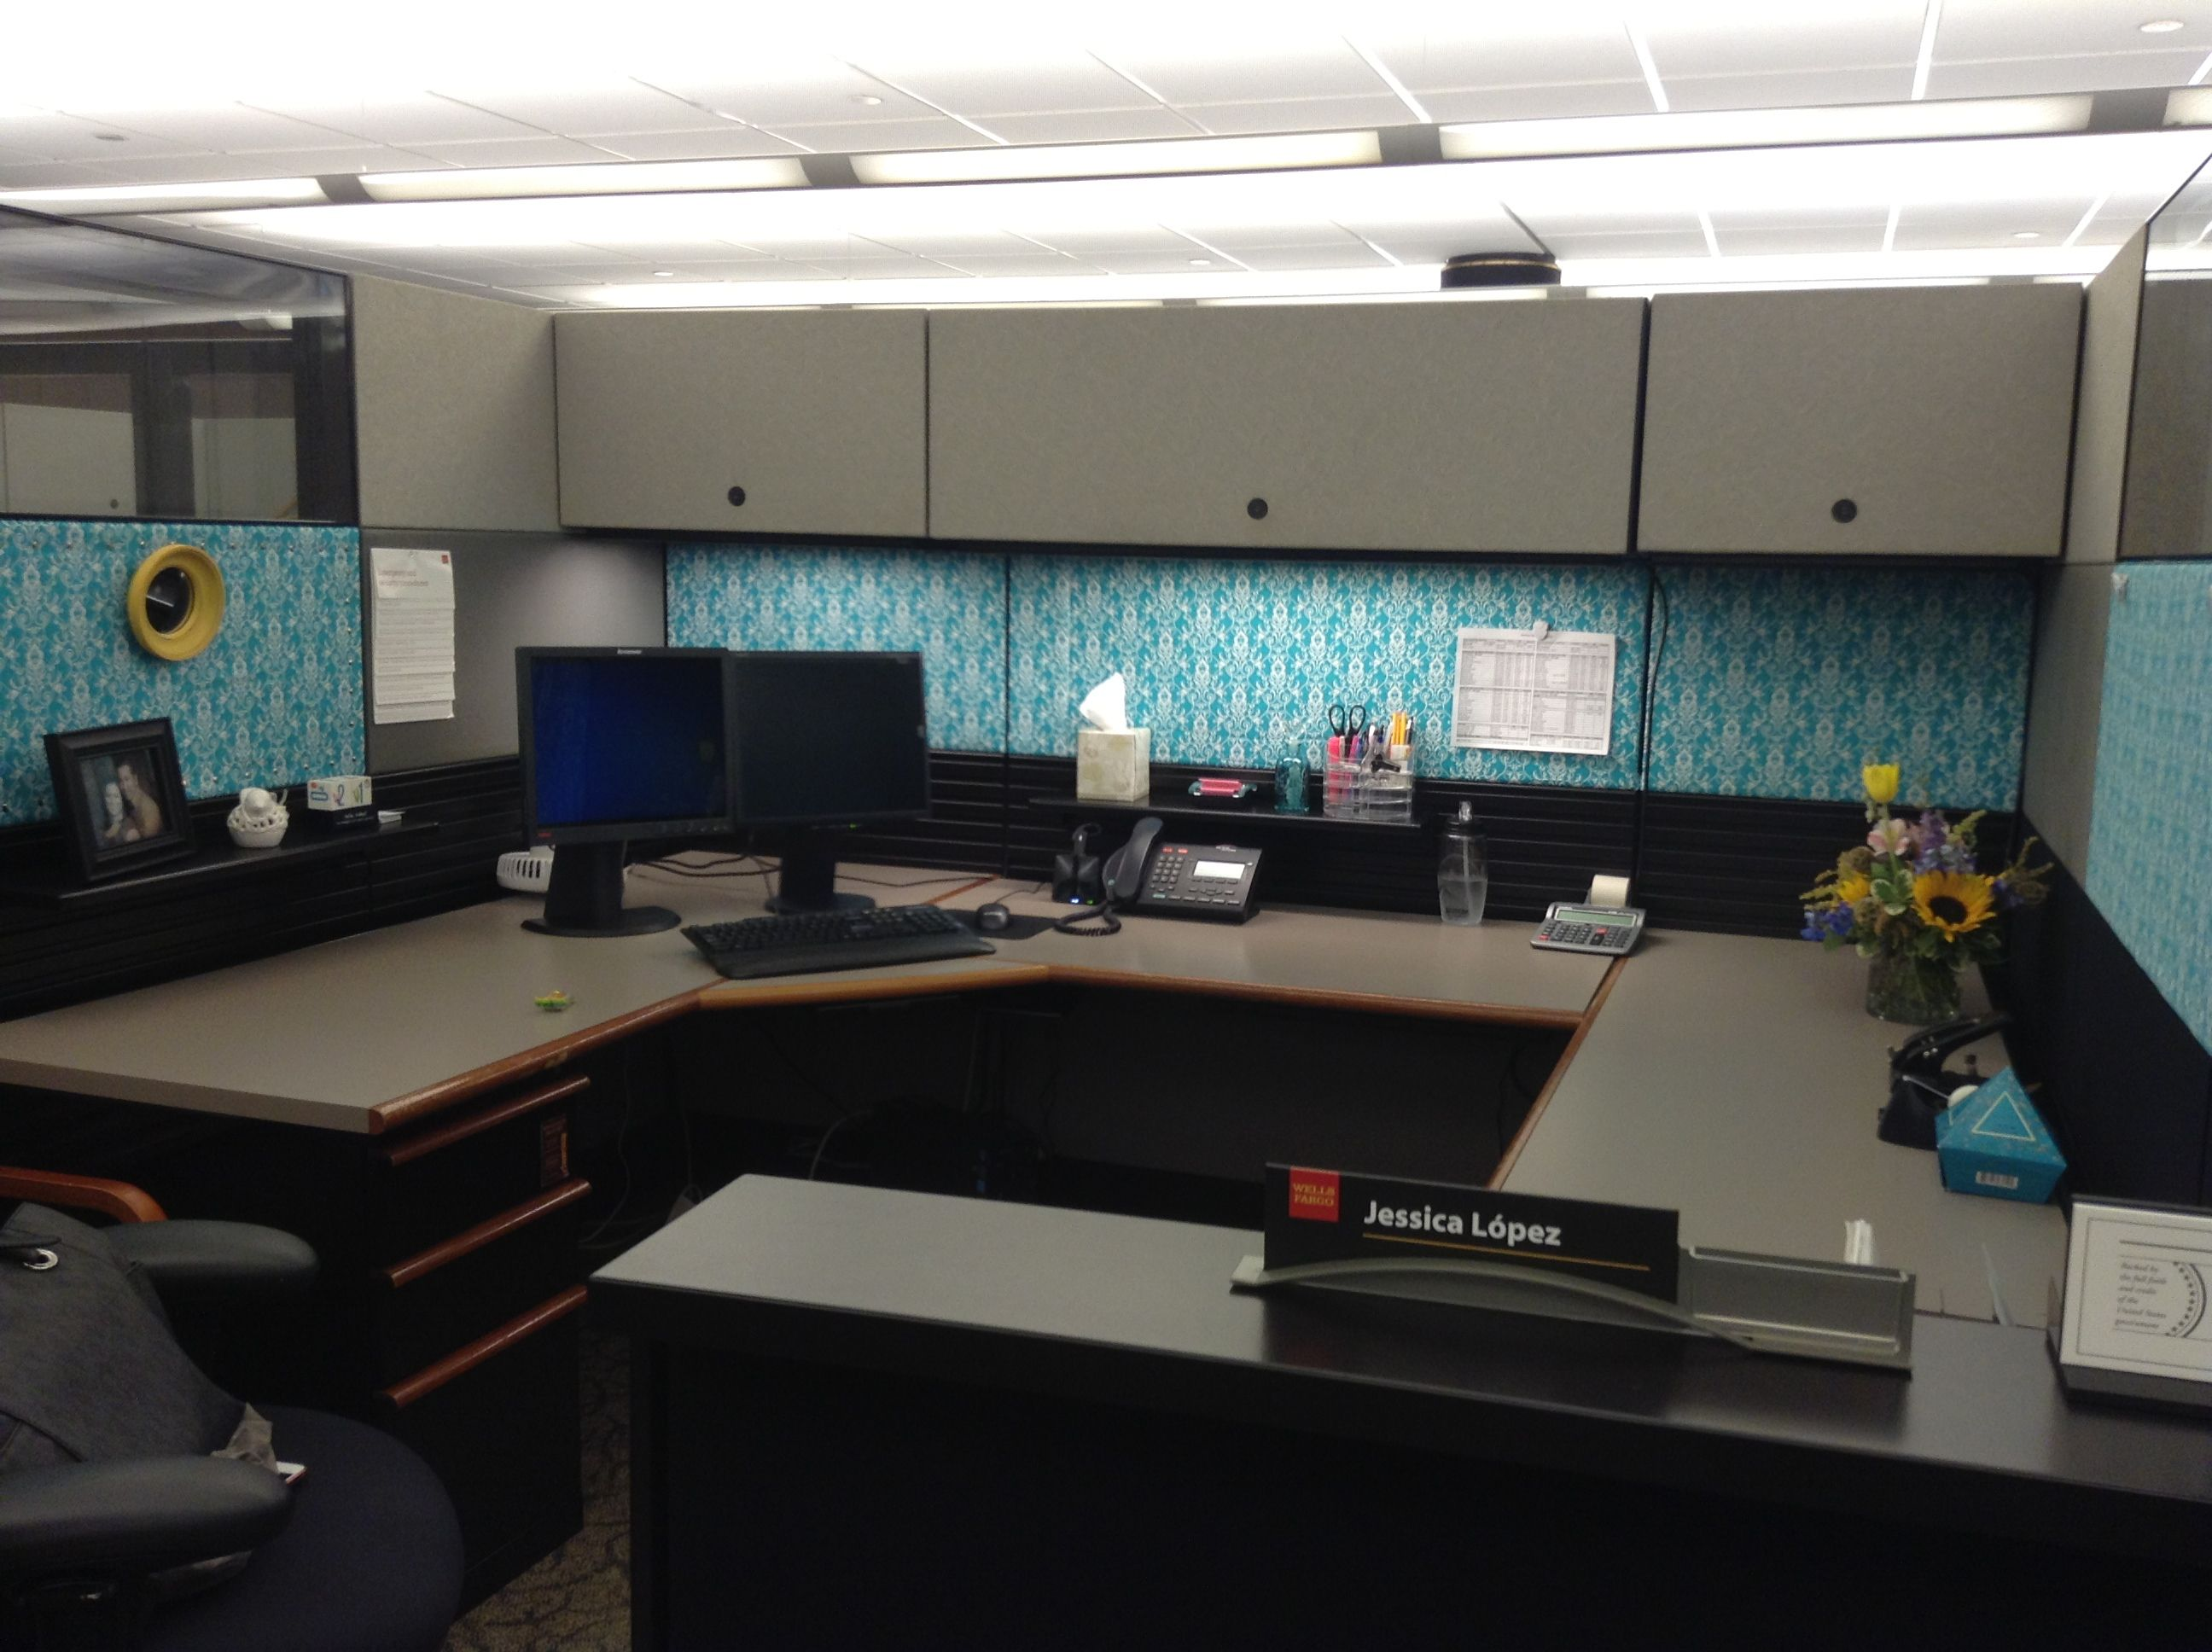 Cubicle Decor cubicle decor dual monitor - google search | work smart